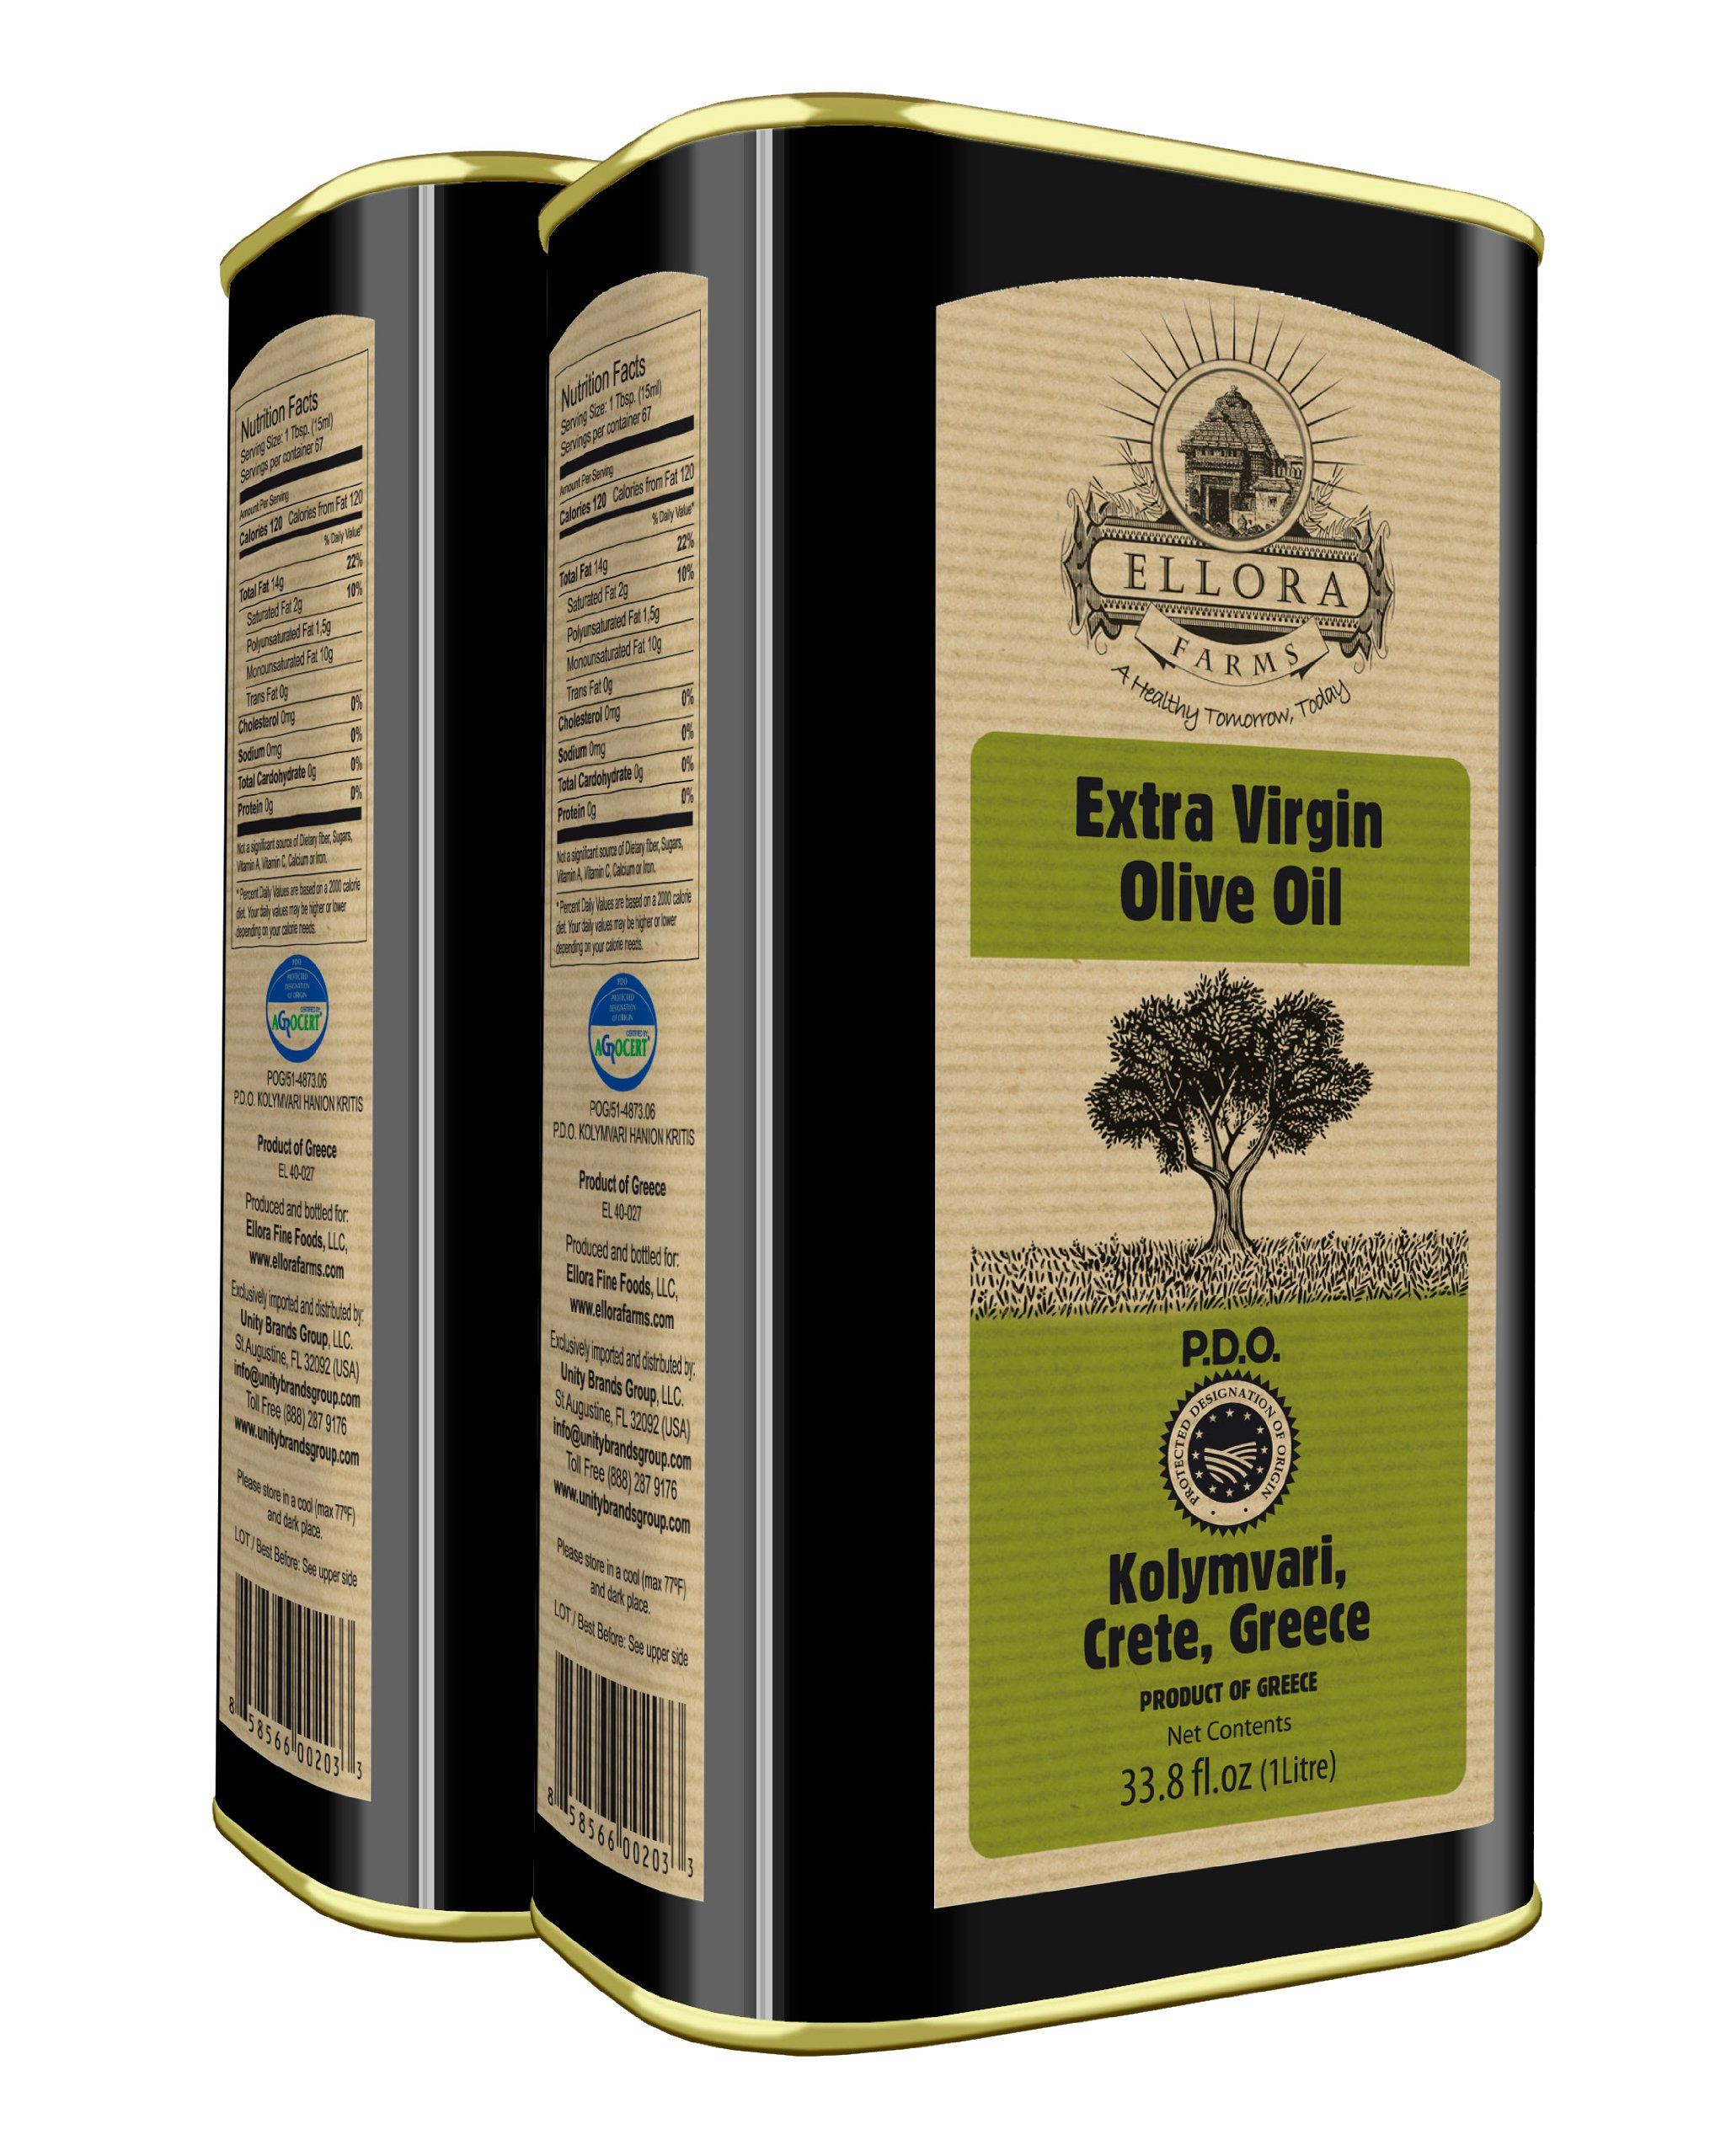 Ellora Farms | Traceable Single Estate Extra Virgin Olive Oil | Certified PDO Harvested in Crete, Greece | First Cold Press | 1Ltr. Tin, 33.8 FL oz. | Pack of 2